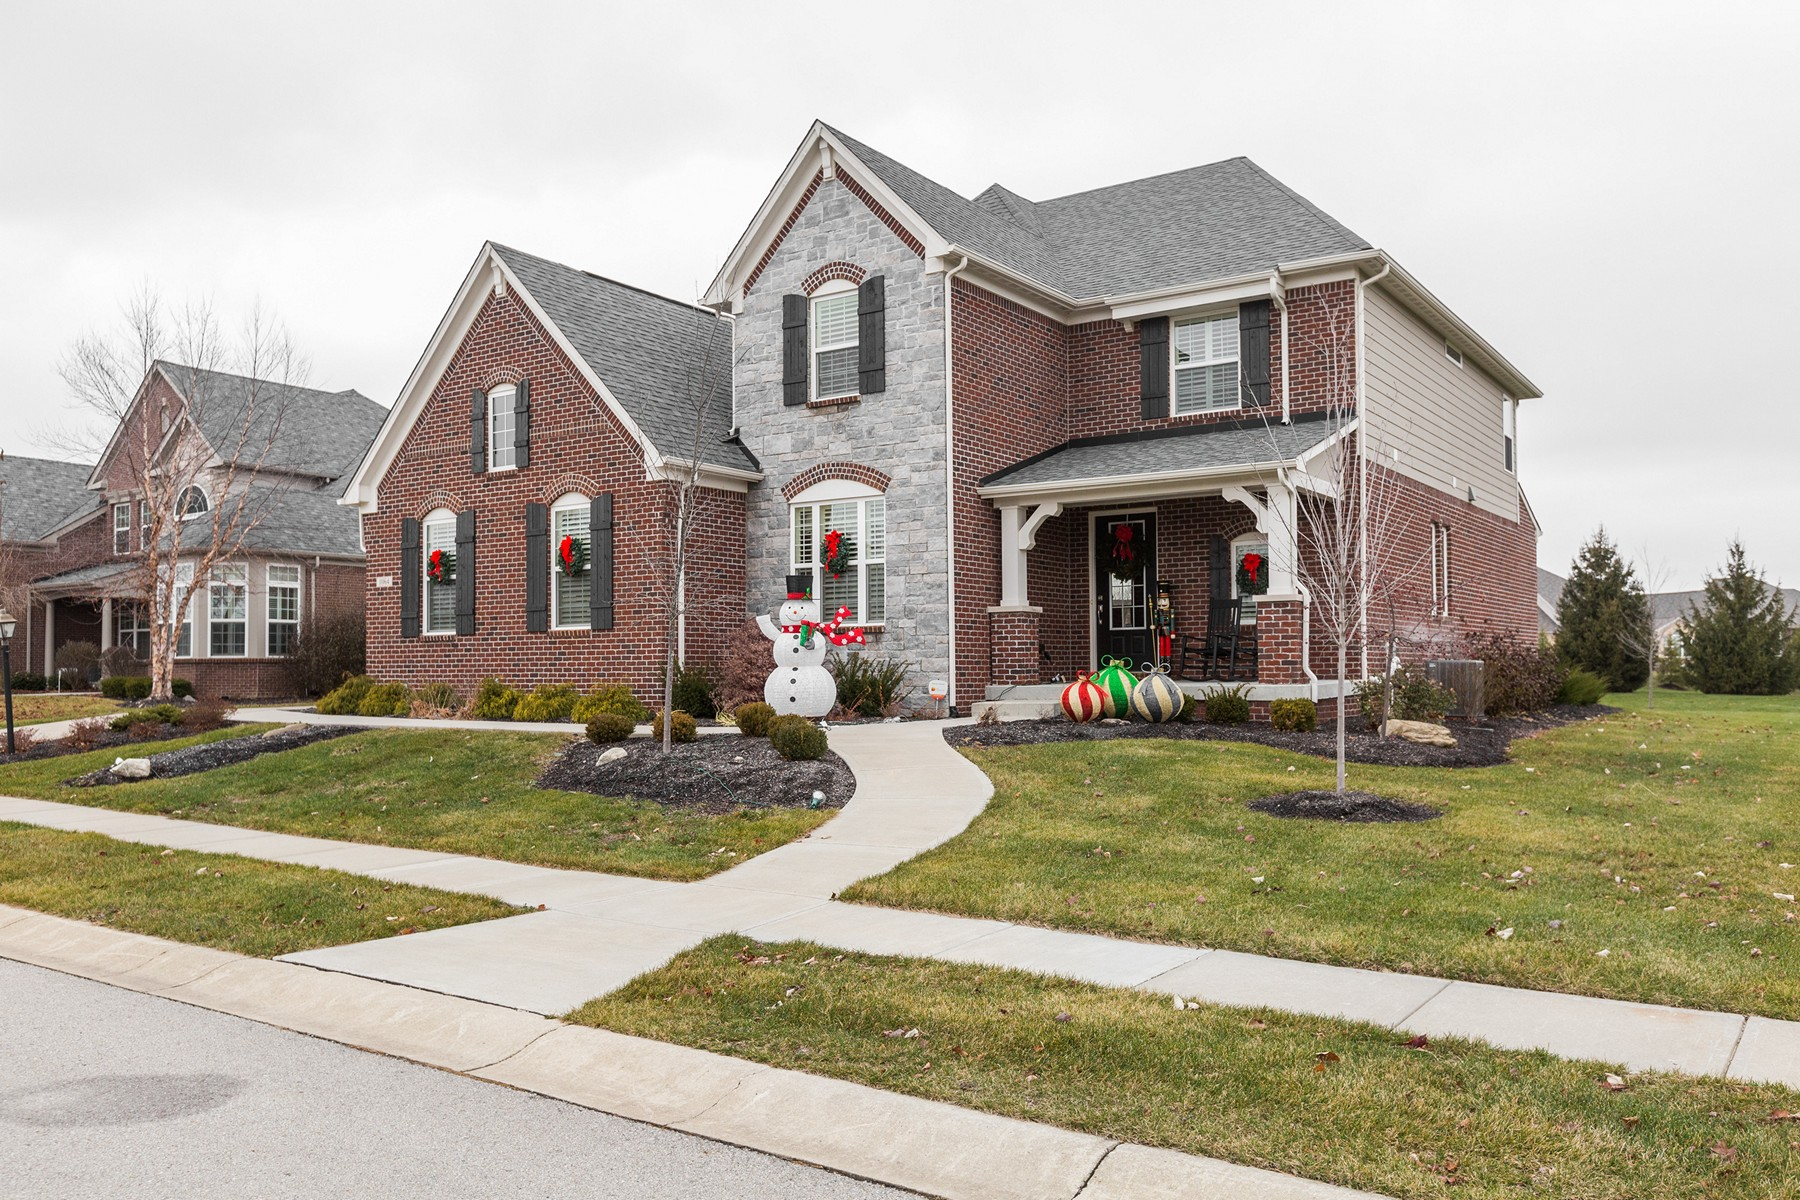 Moradia para Venda às Gorgeous Former Model Home 11164 Fontaine Way Zionsville, Indiana, 46077 Estados Unidos